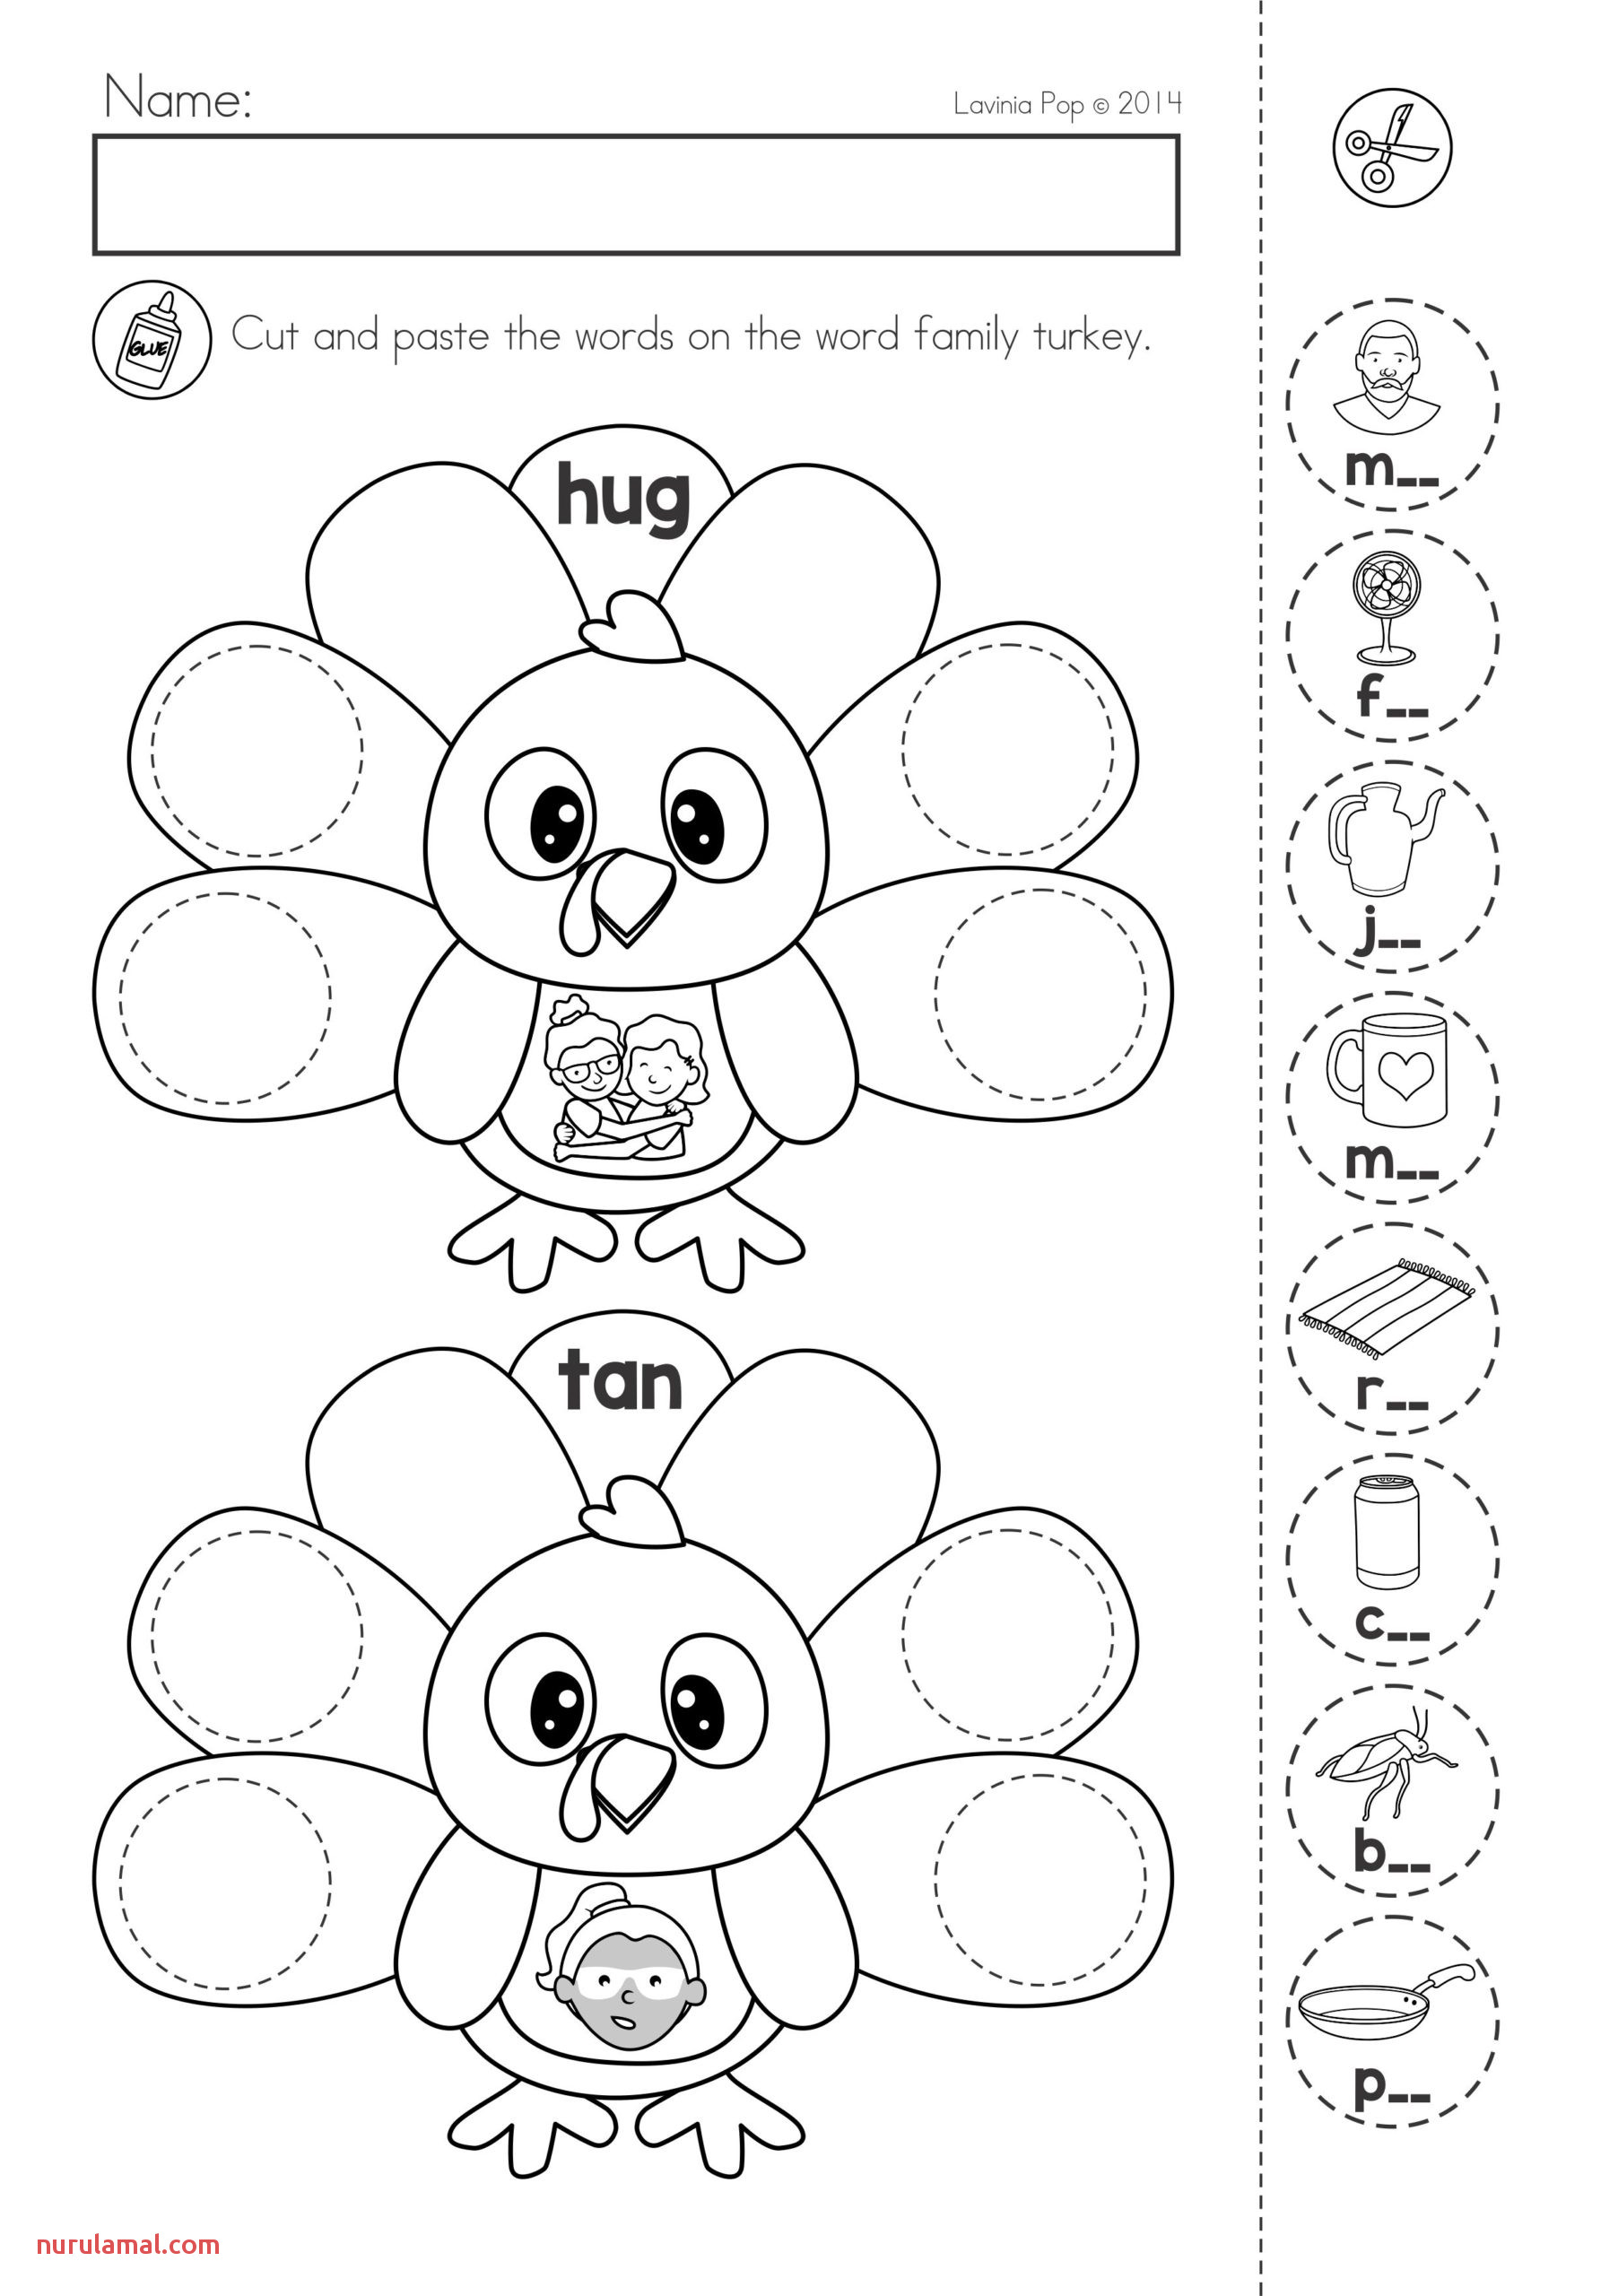 word equation calculator beginning sounds worksheets for kindergarten test paper independent practice math worksheet identifying theme middle school thanksgiving coloring preschoolers free scaled